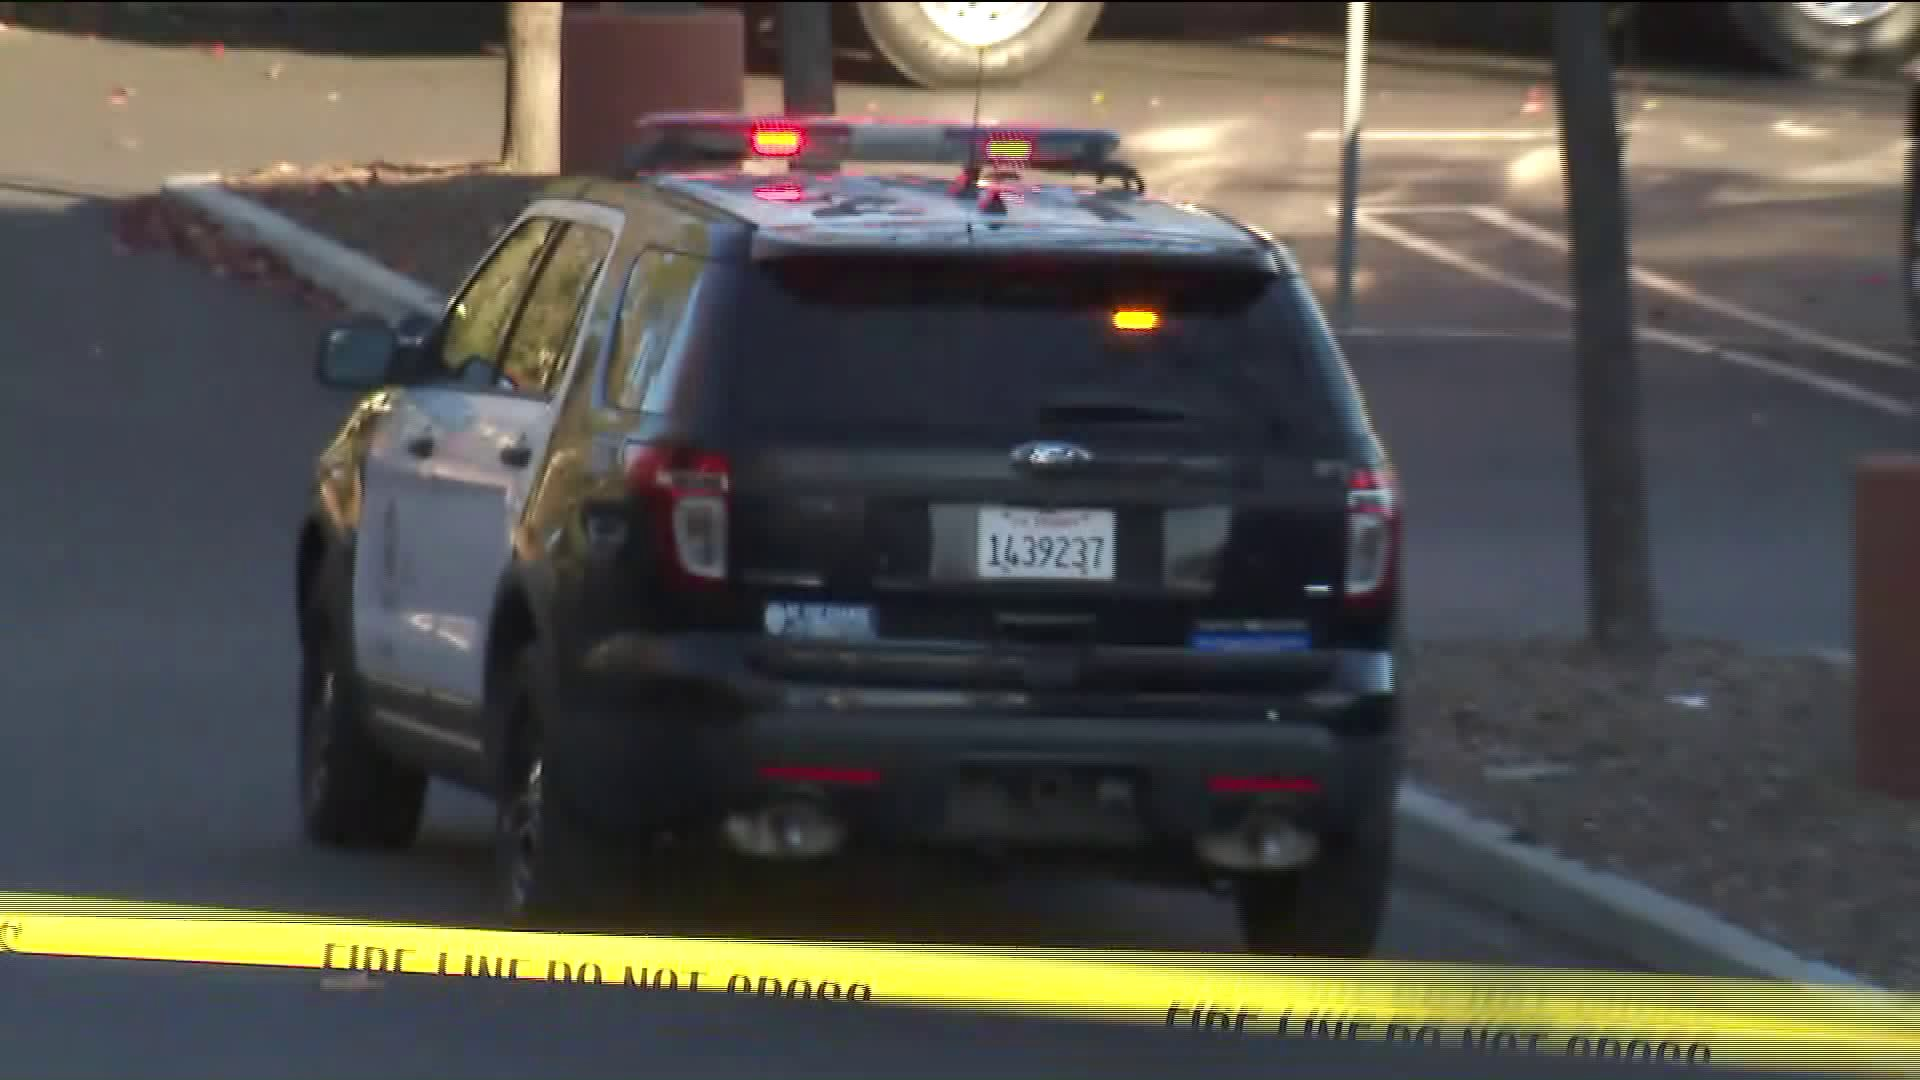 LAPD responded to a hazardous materials incident involving possible fentanyl exposure at a hotel in Woodland Hills on Dec. 31, 2019. (Credit: KTLA)